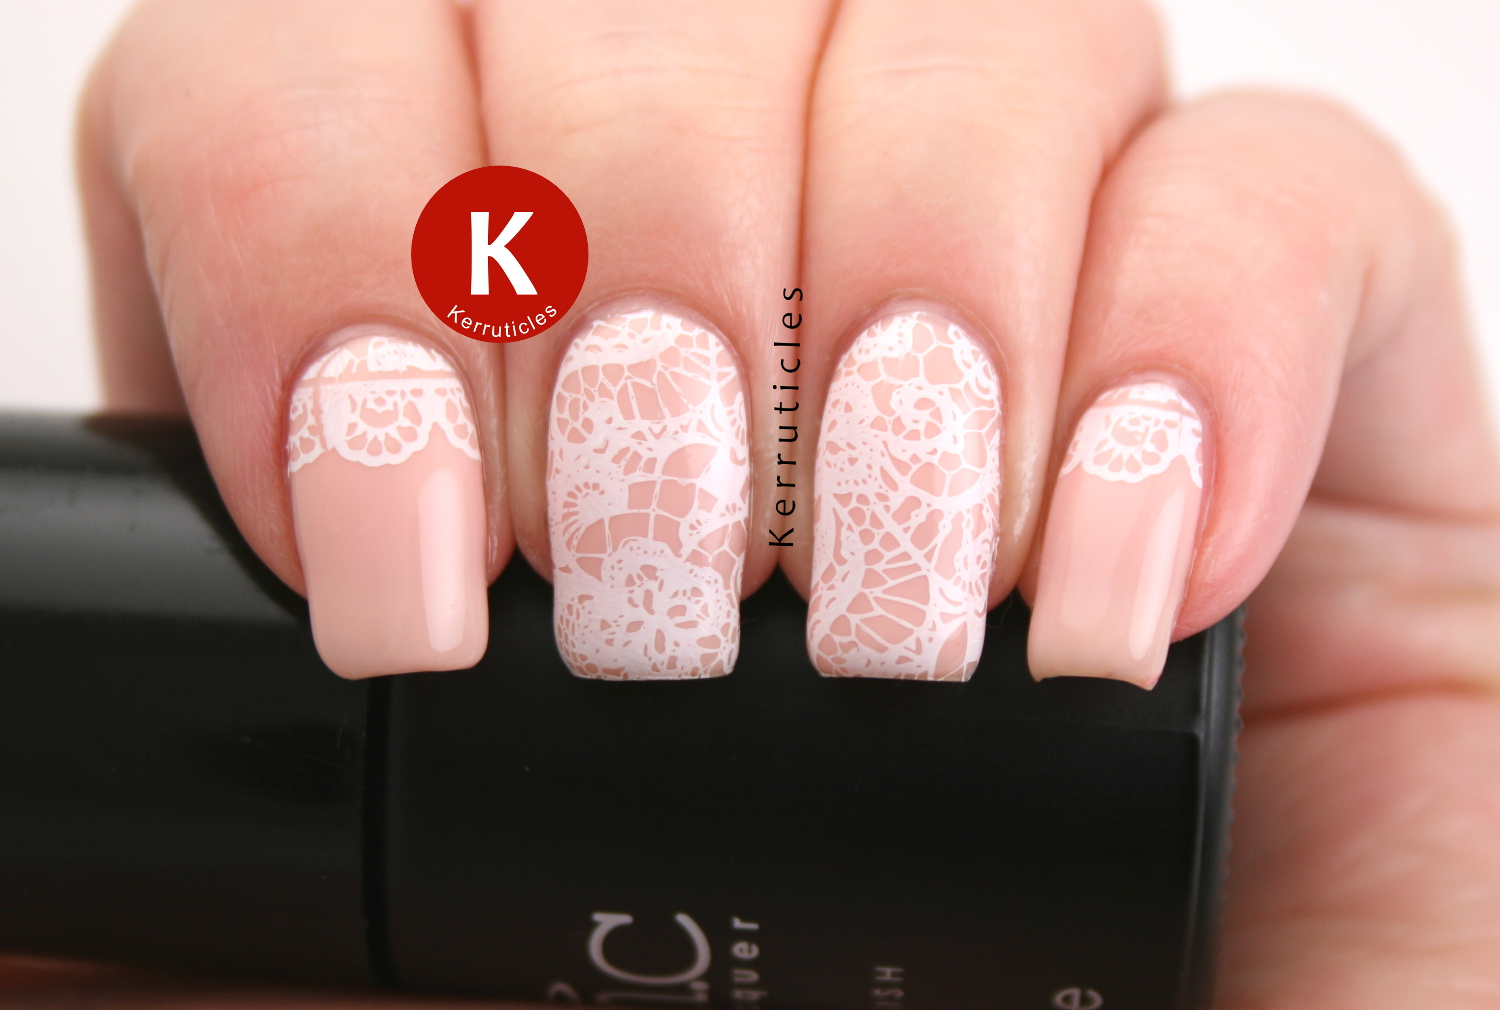 Pale peach with lace stamping